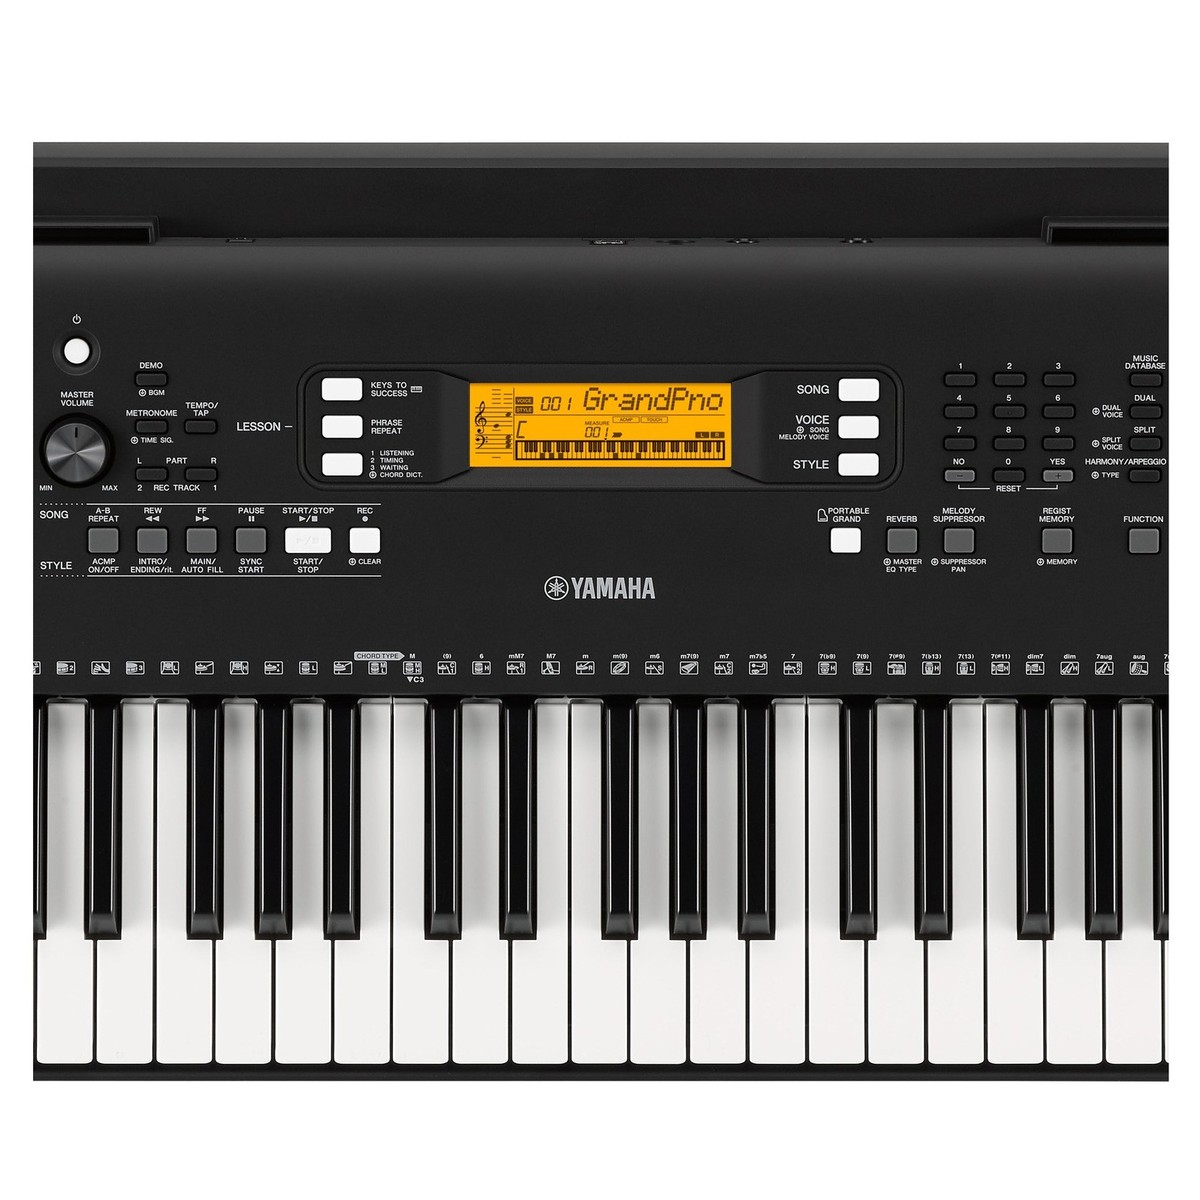 Yamaha psr ew300 portable keyboard at for Yamaha psr ew